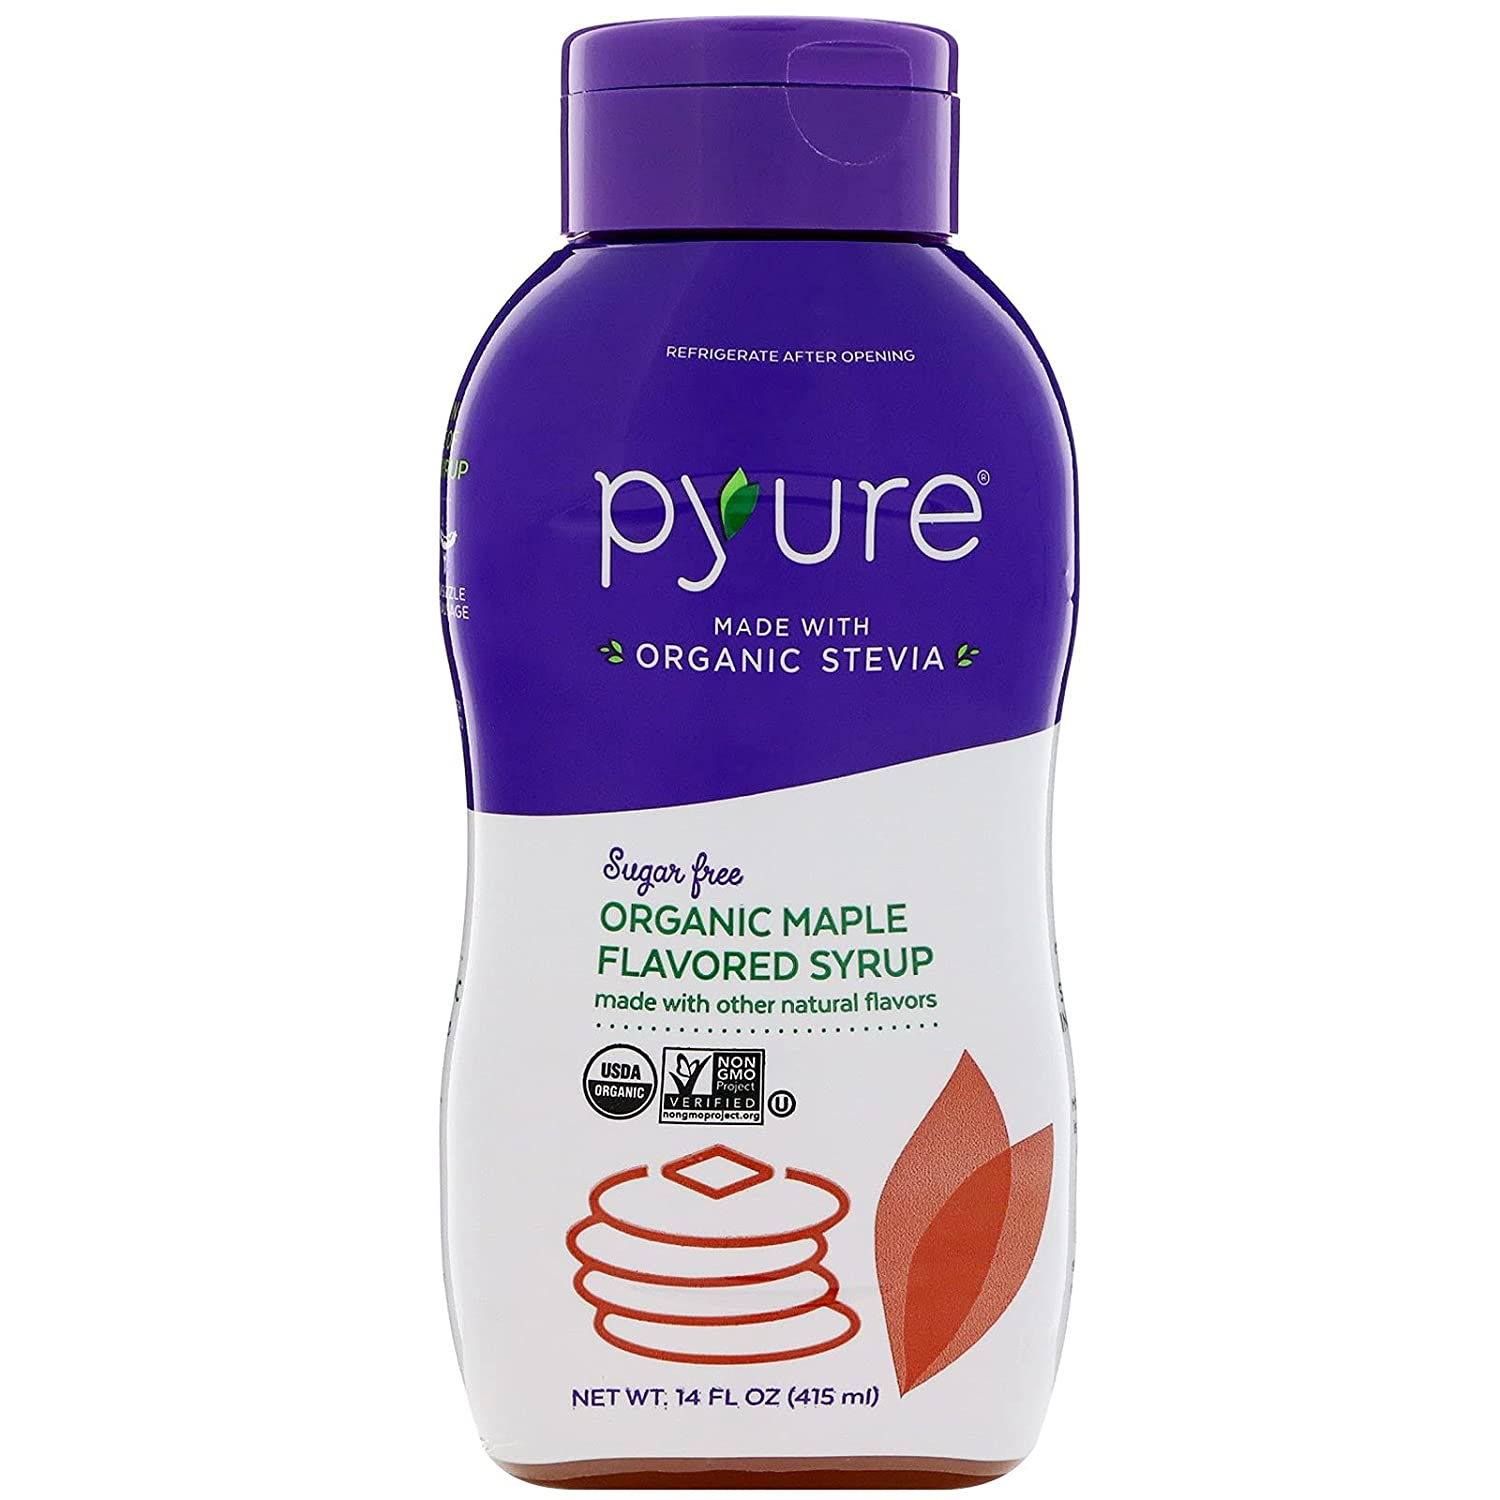 Organic Maple Flavored Syrup - Pyure Organics - Keto Certified by the Paleo Foundation